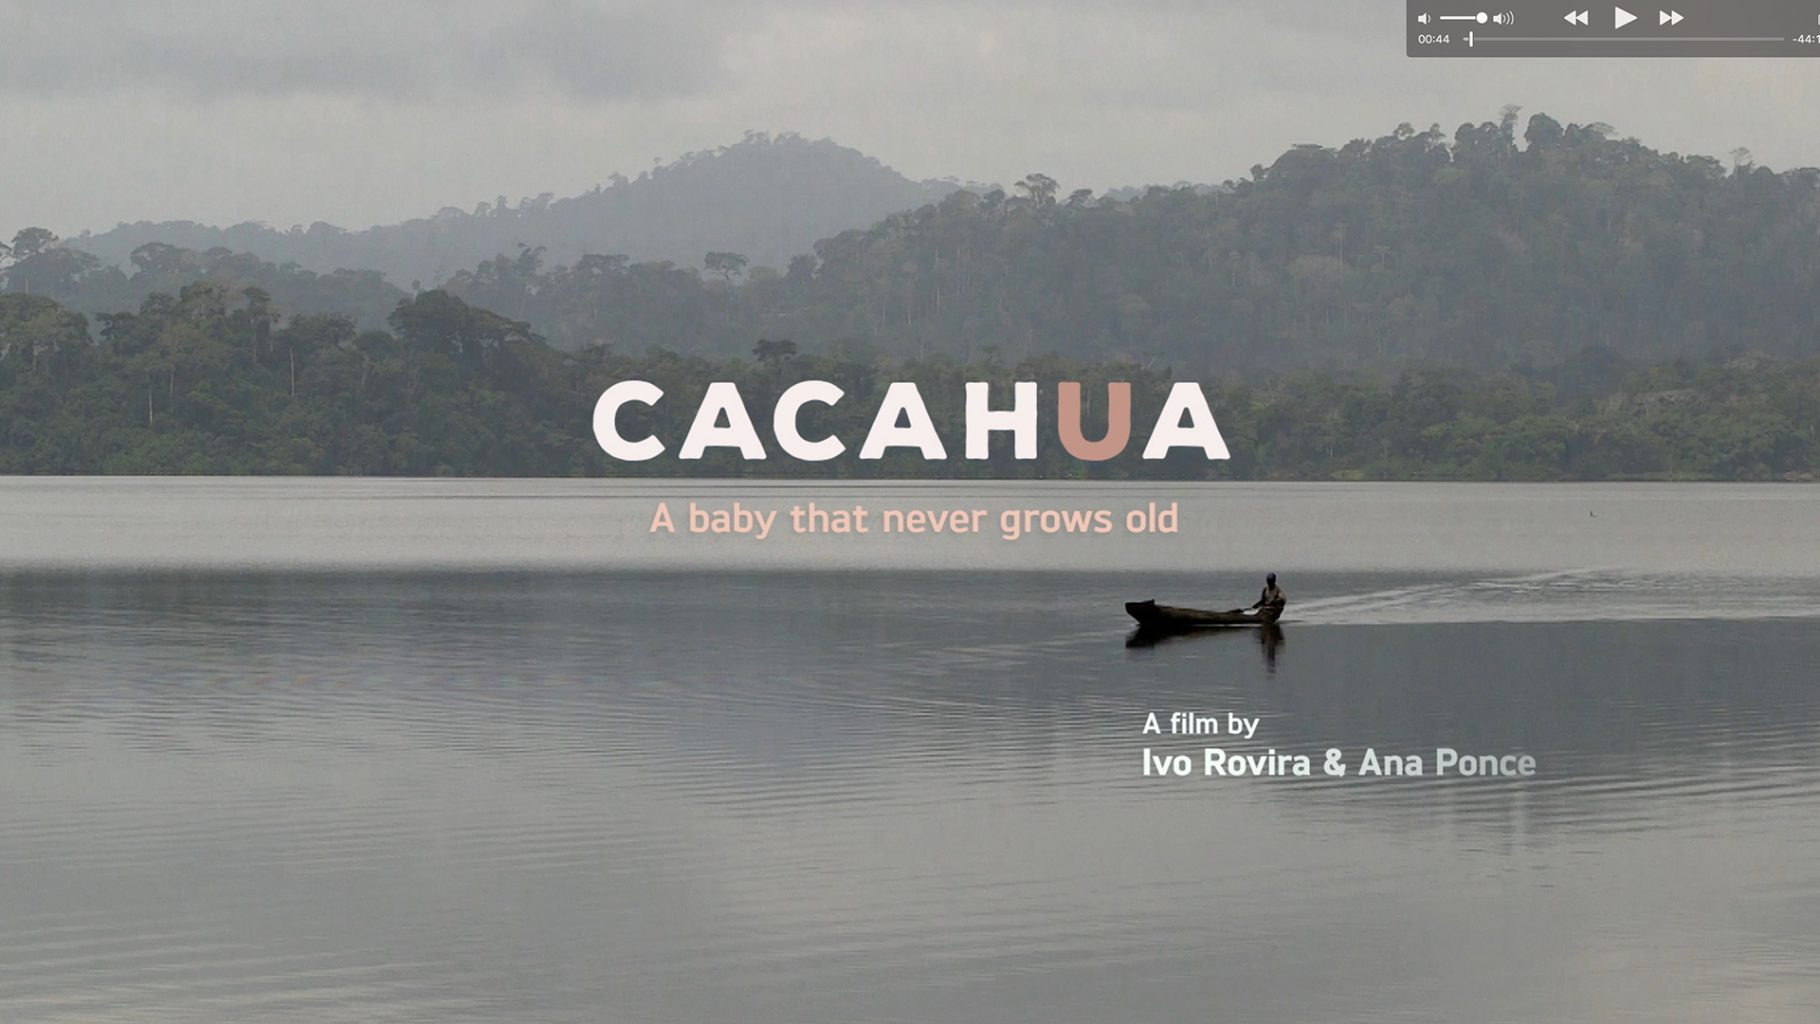 Cacahua. A baby that never grows old.